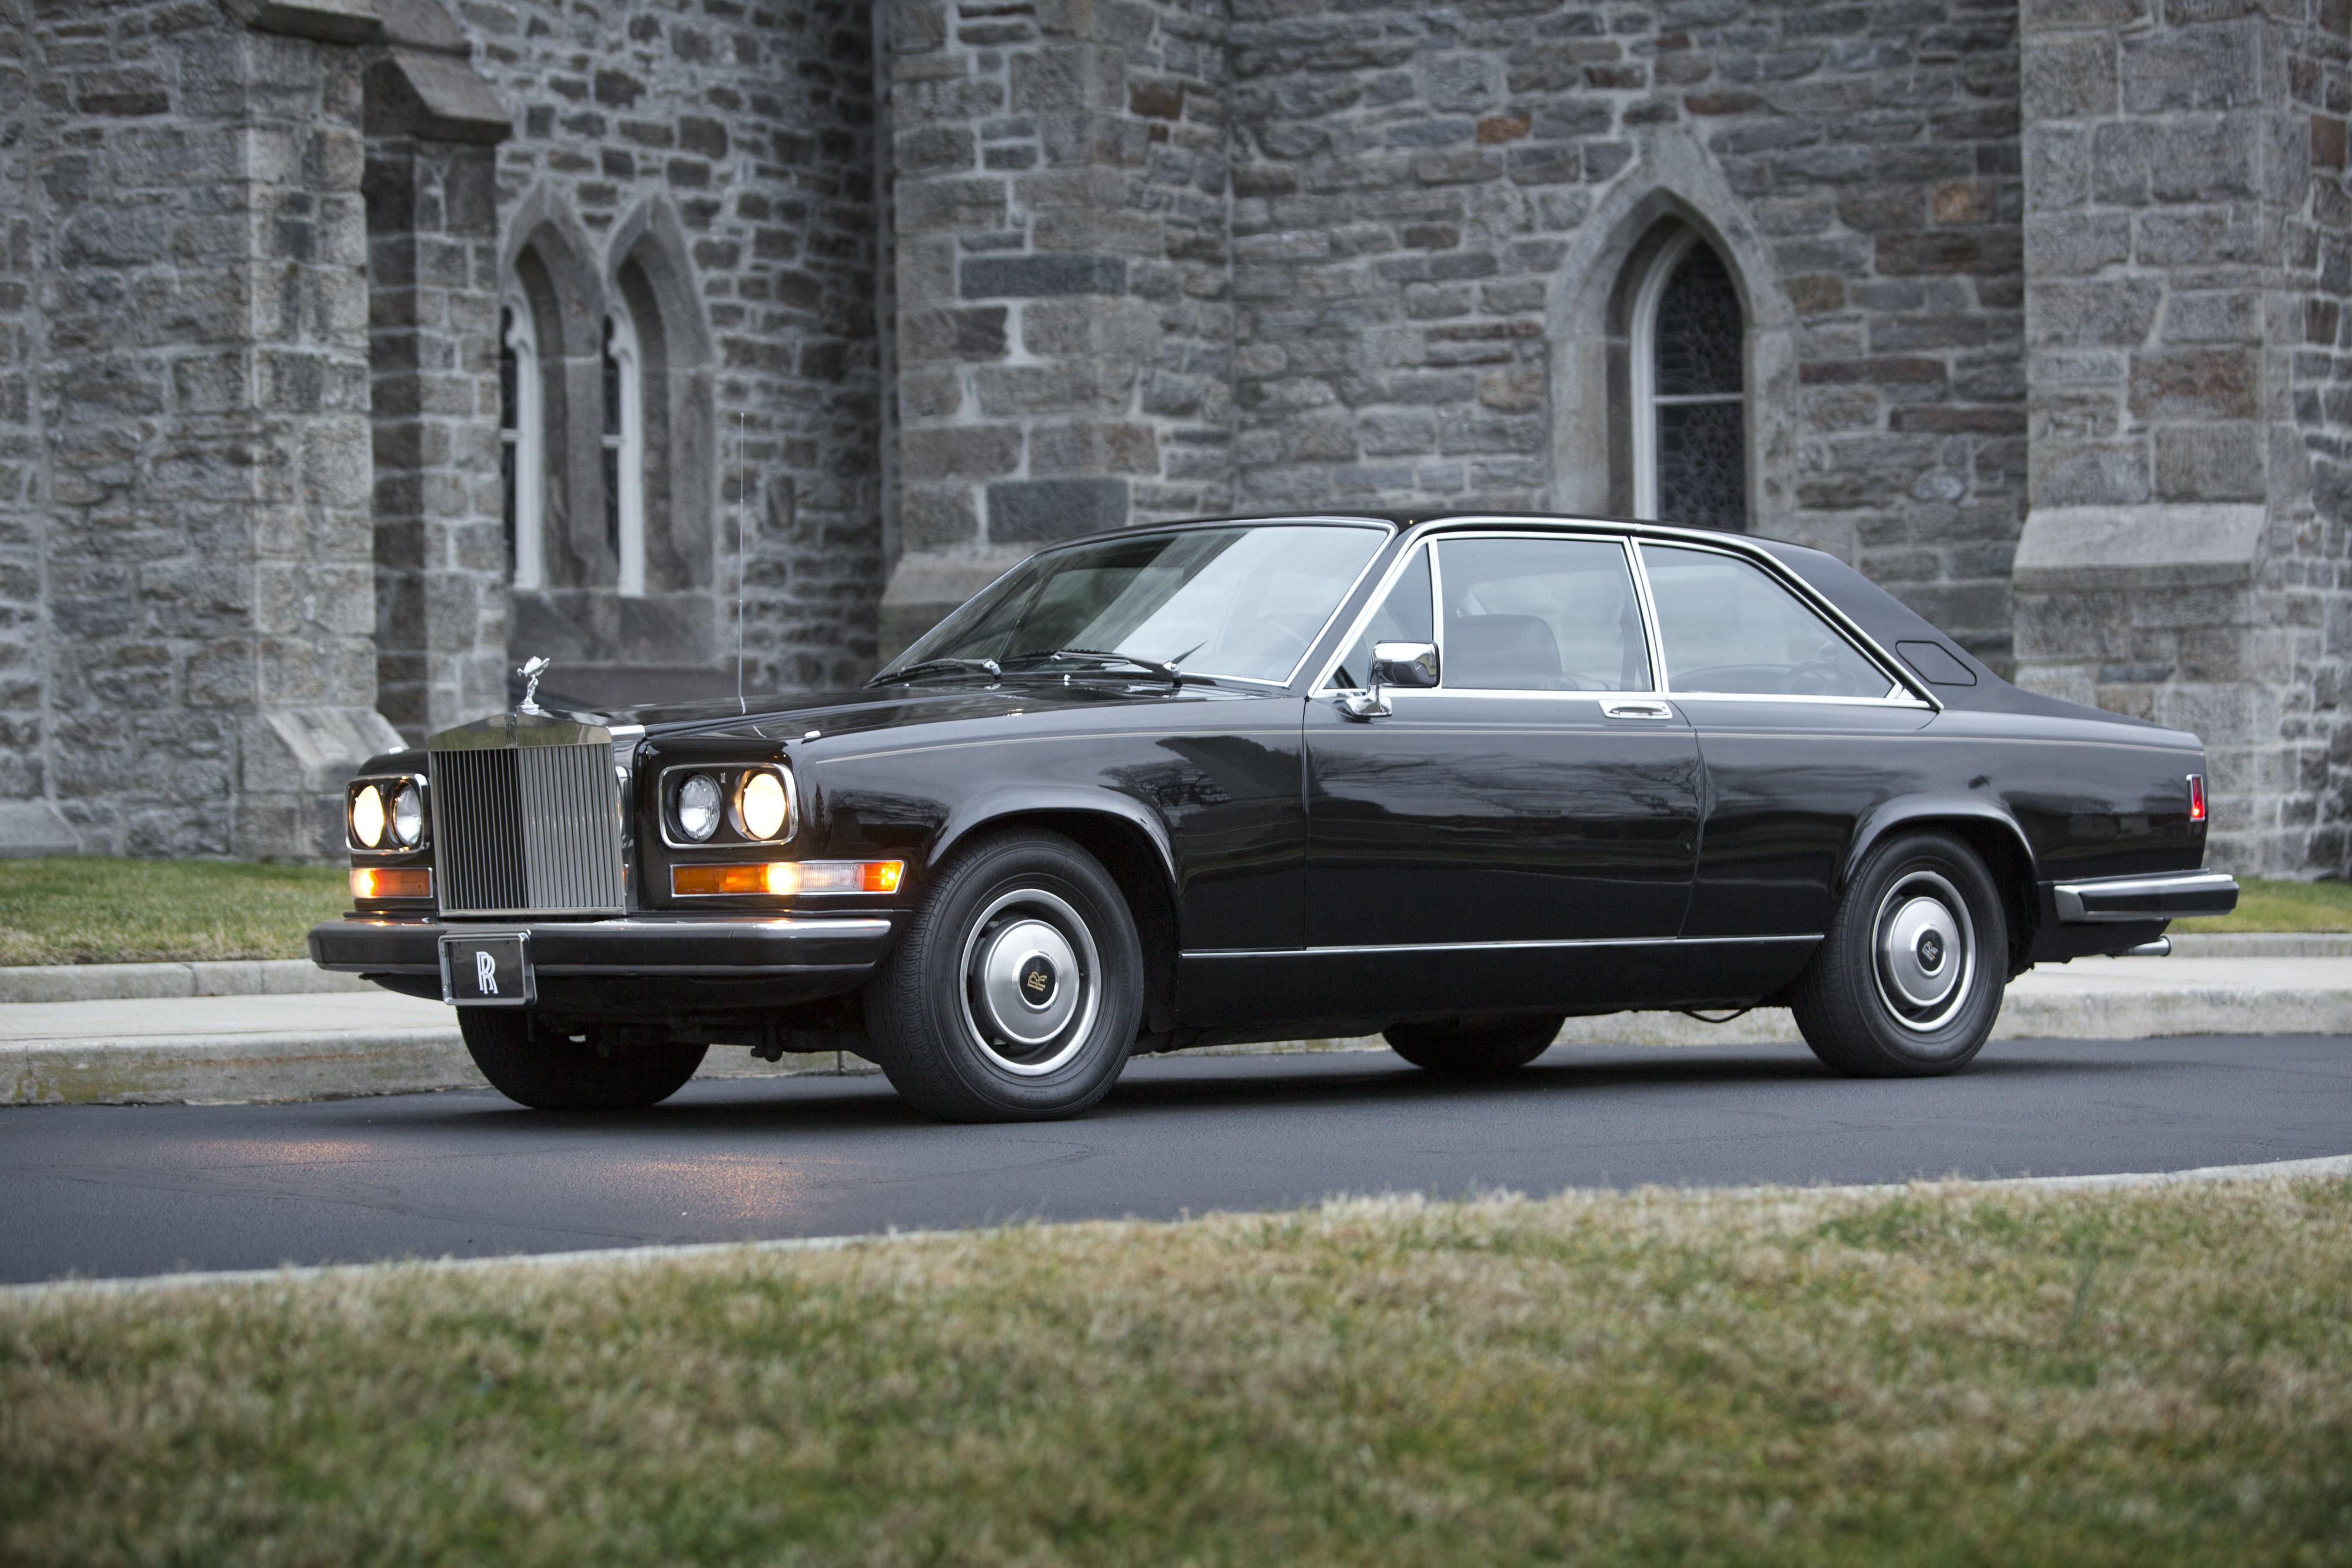 25,486 miles from new 1981 Rolls-Royce Camargue Two Door Coupe Registration...